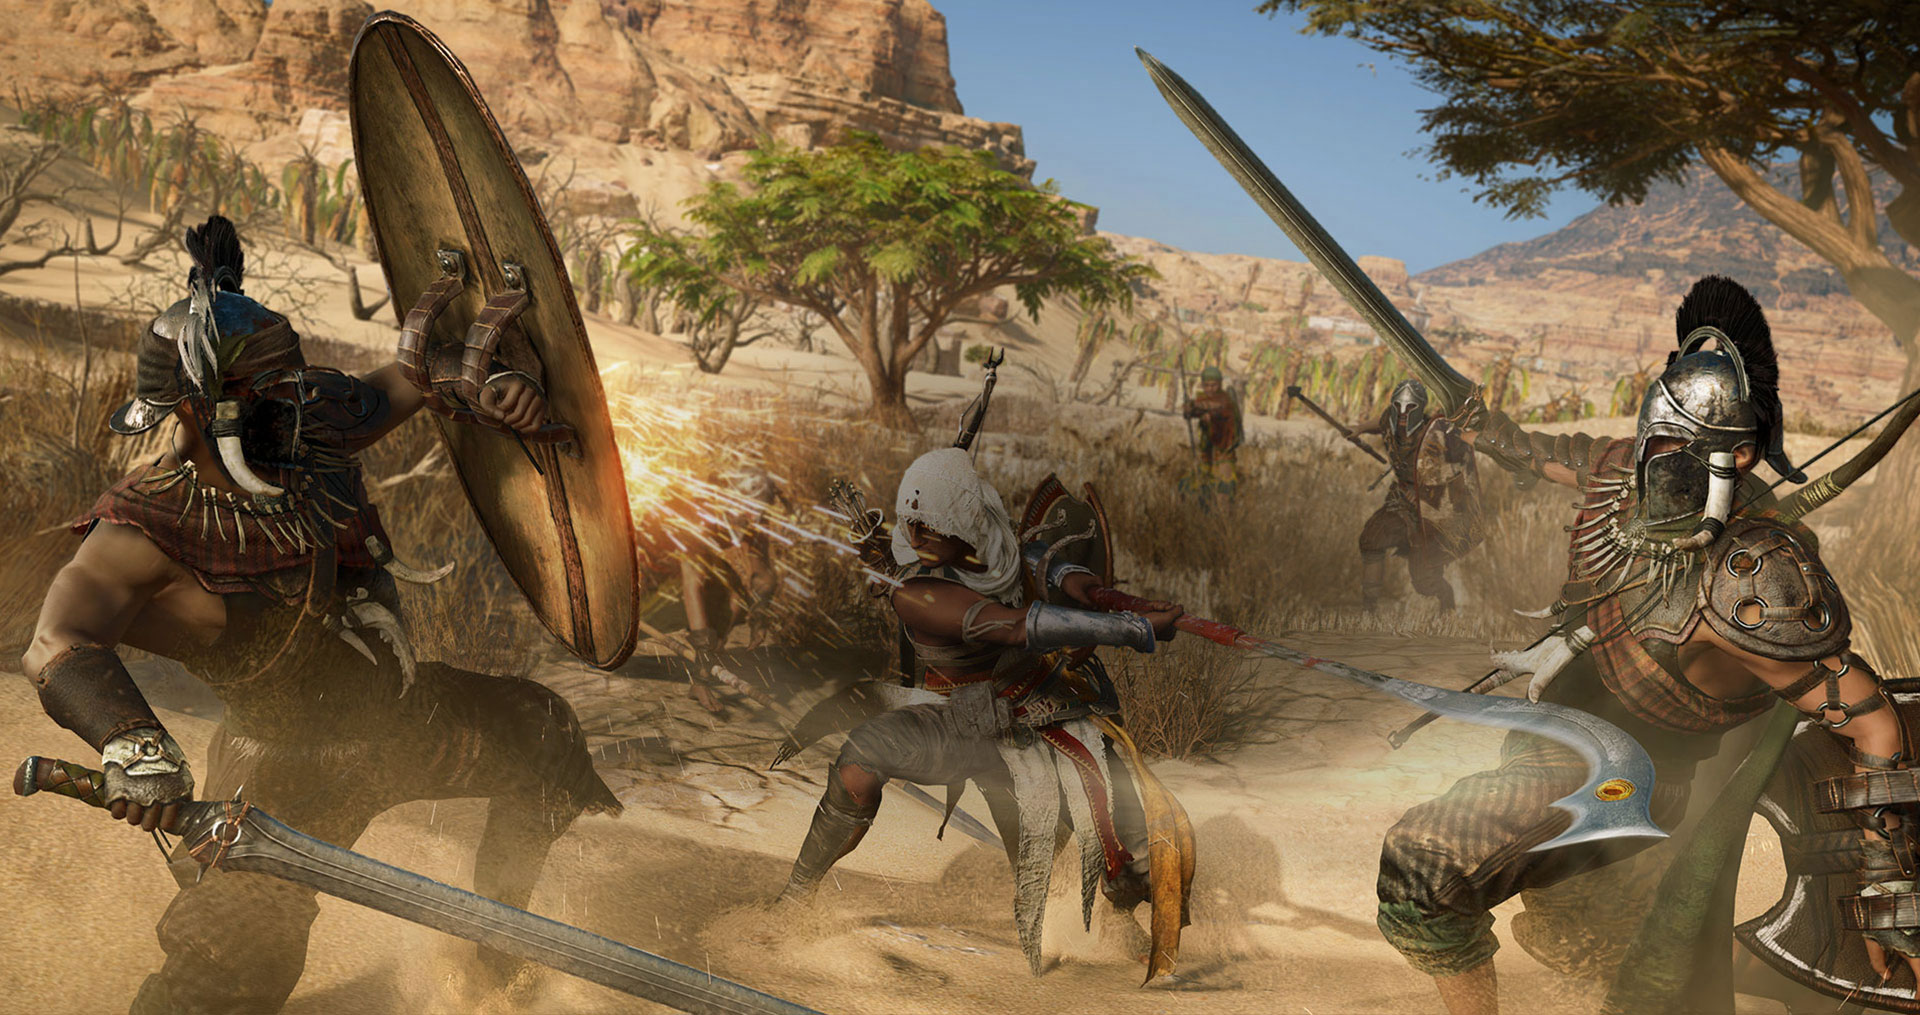 The new Assassin's Creed Origins trailer shows off the stabby beginnings of the whole saga